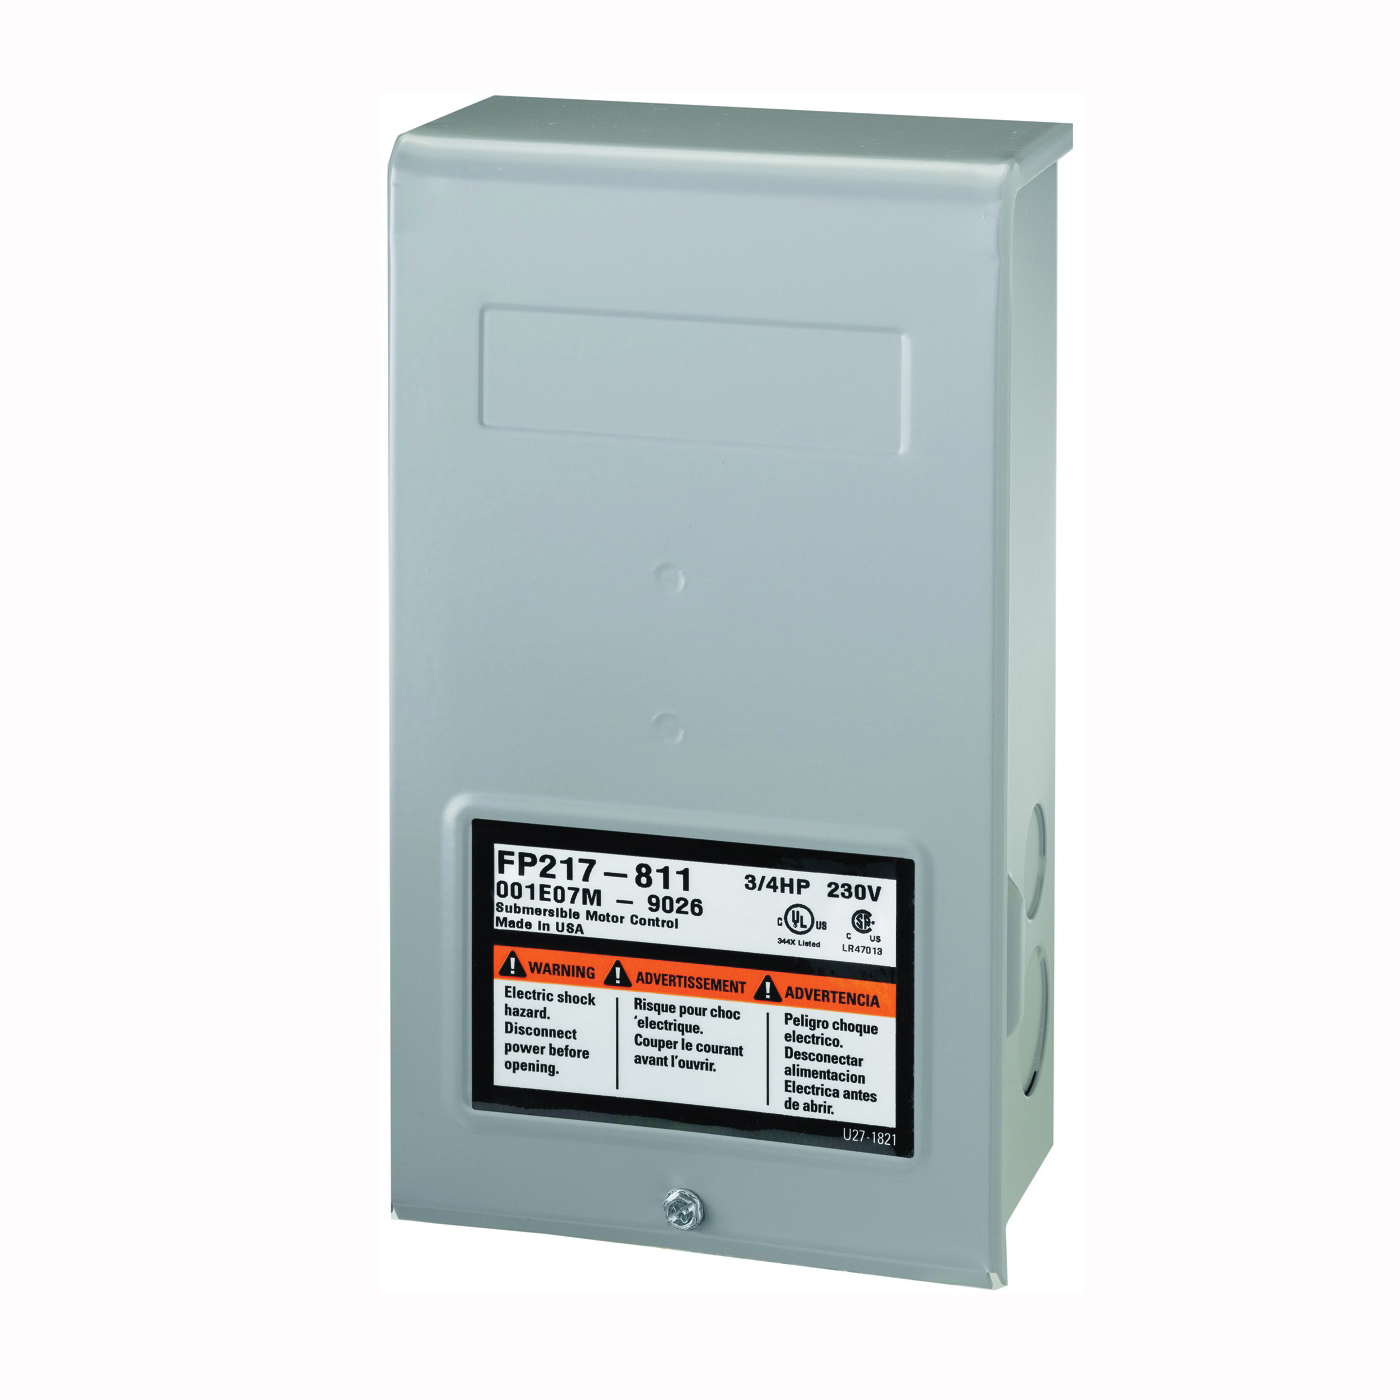 Picture of Flotec FP217-812 Control Box, 230 V, 1 hp, 3-Wire, Multiple Size Electrical Knockout, NEMA 3R Enclosure